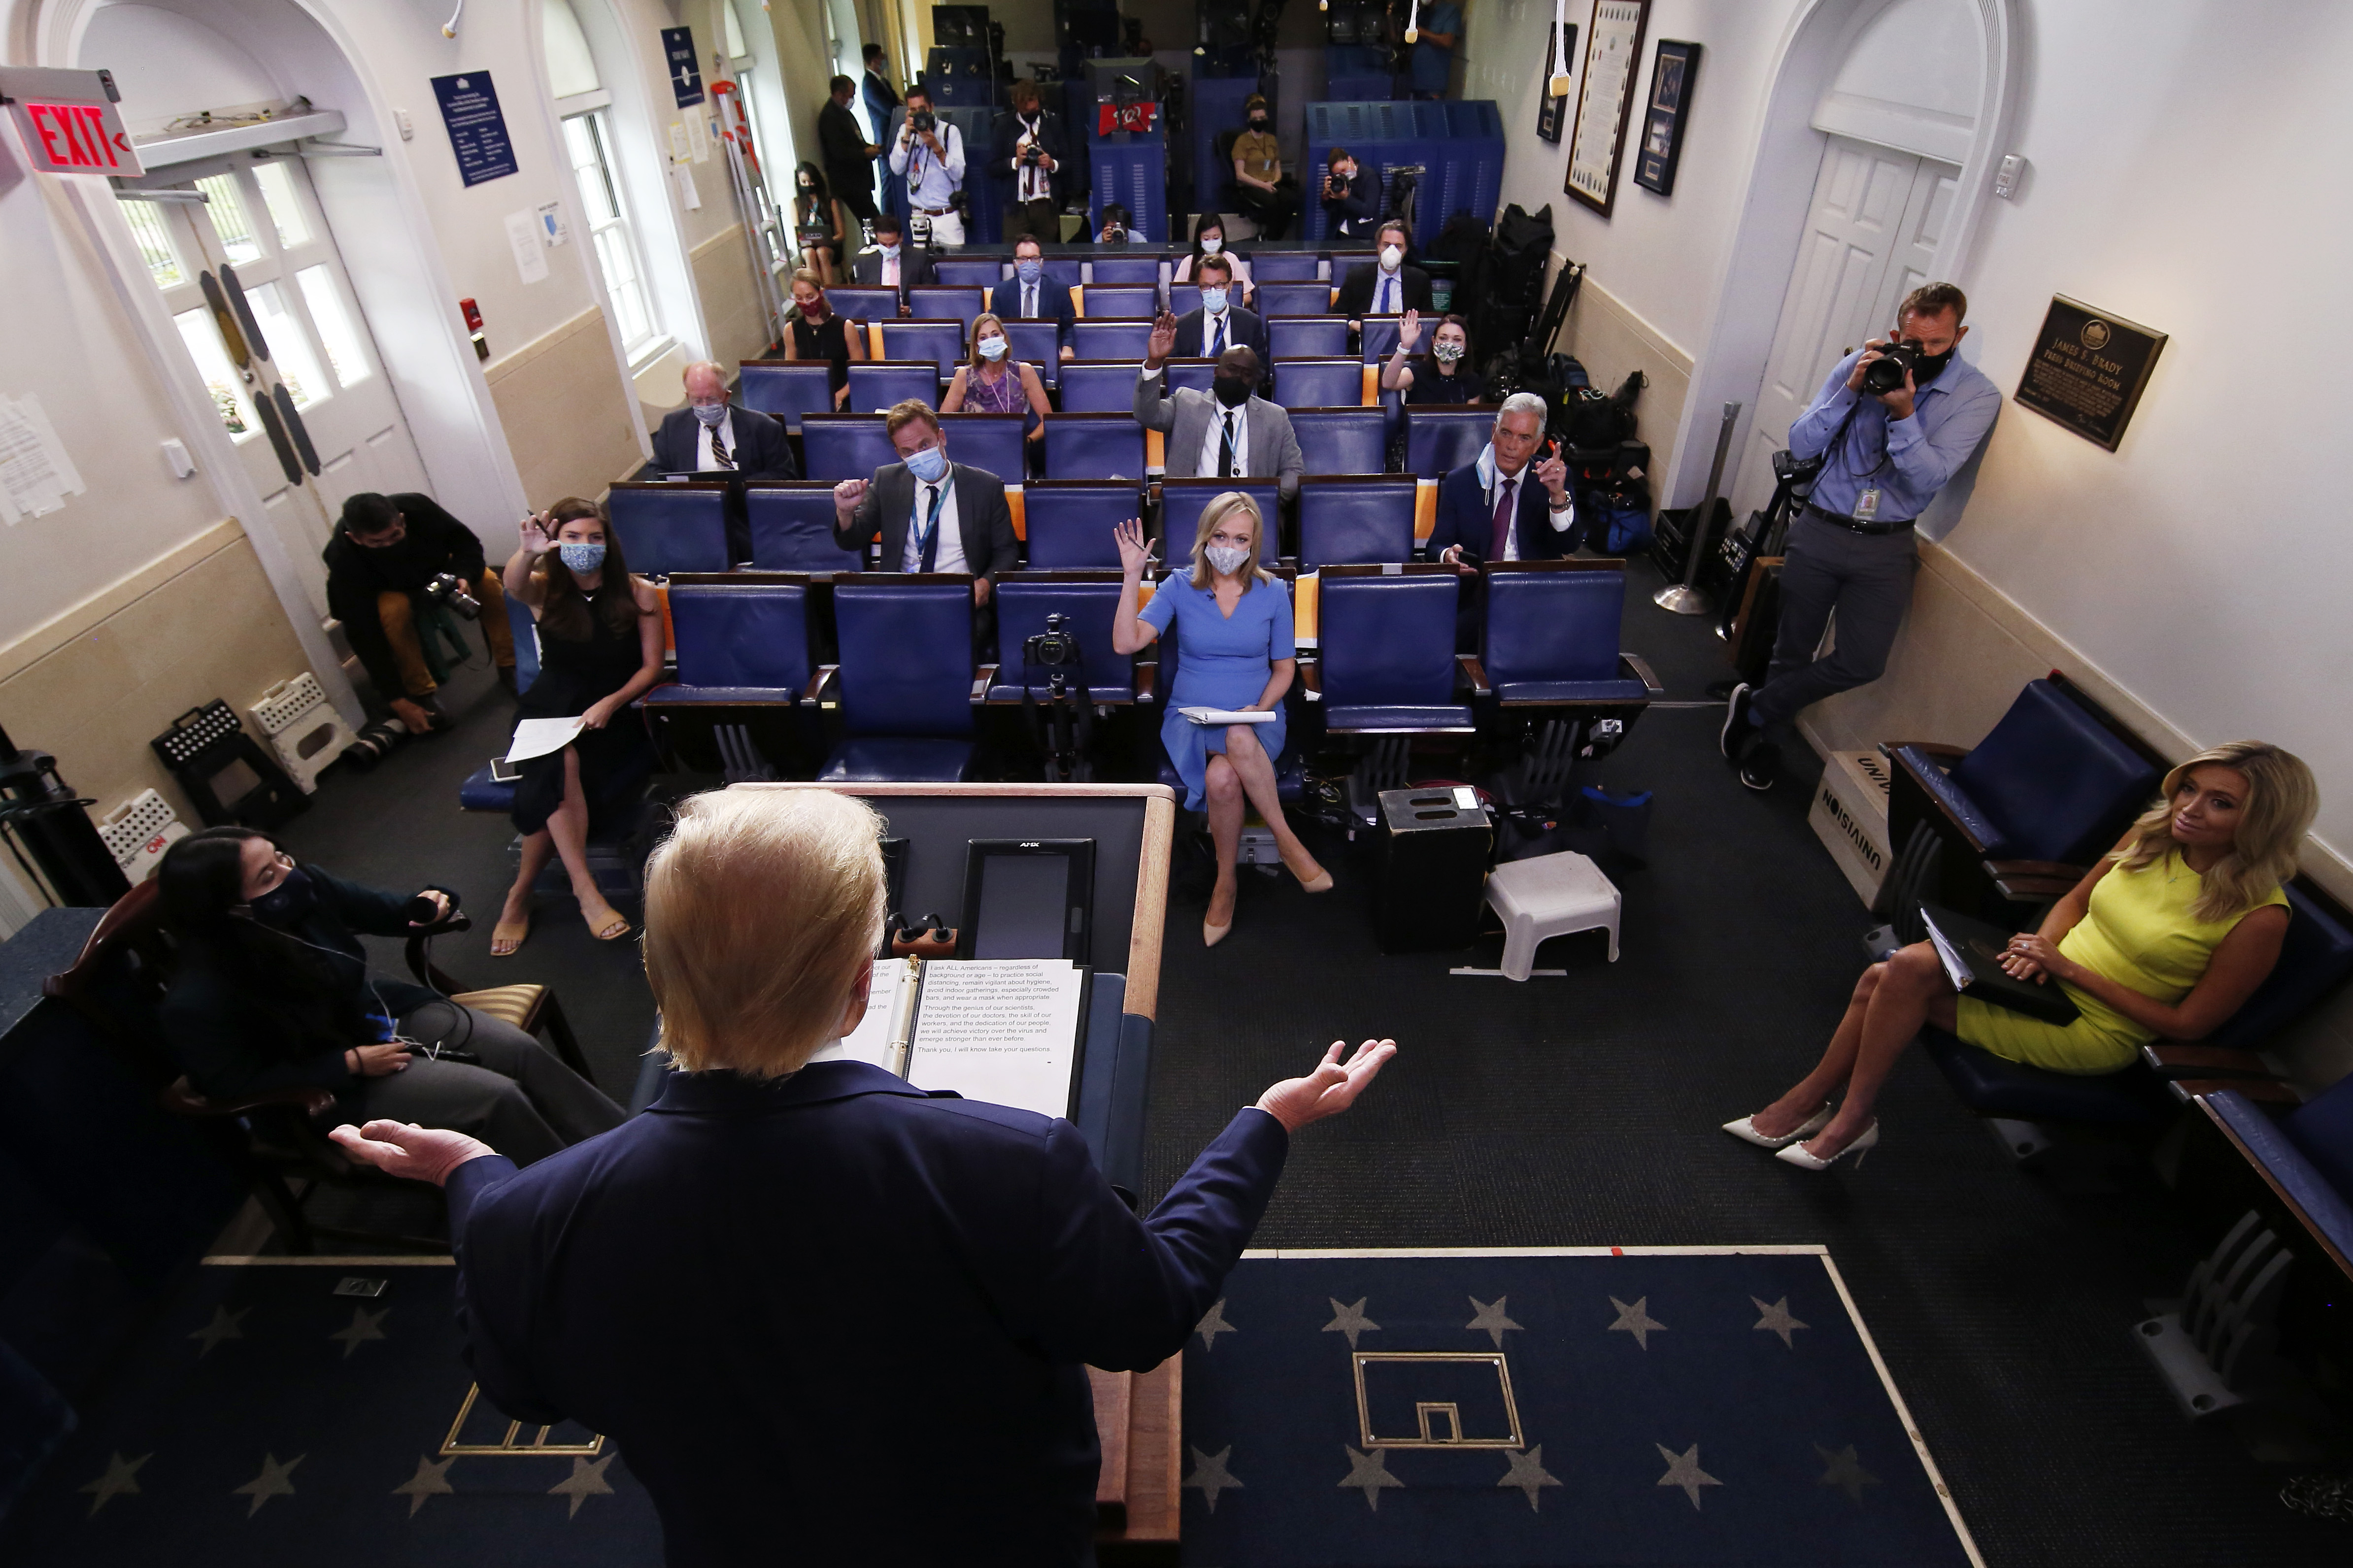 WASHINGTON, DC - JULY 28: U.S. President Donald Trump speaks as White House Press Secretary Kayleigh McEnany (R) looks on during a news briefing at the James Brady Press Briefing Room of the White House July 28, 2020 in Washington, DC. The president announced that Eastman Kodak will receive a loan to manufacture ingredients used in pharmaceuticals. (Photo by Alex Wong/Getty Images)